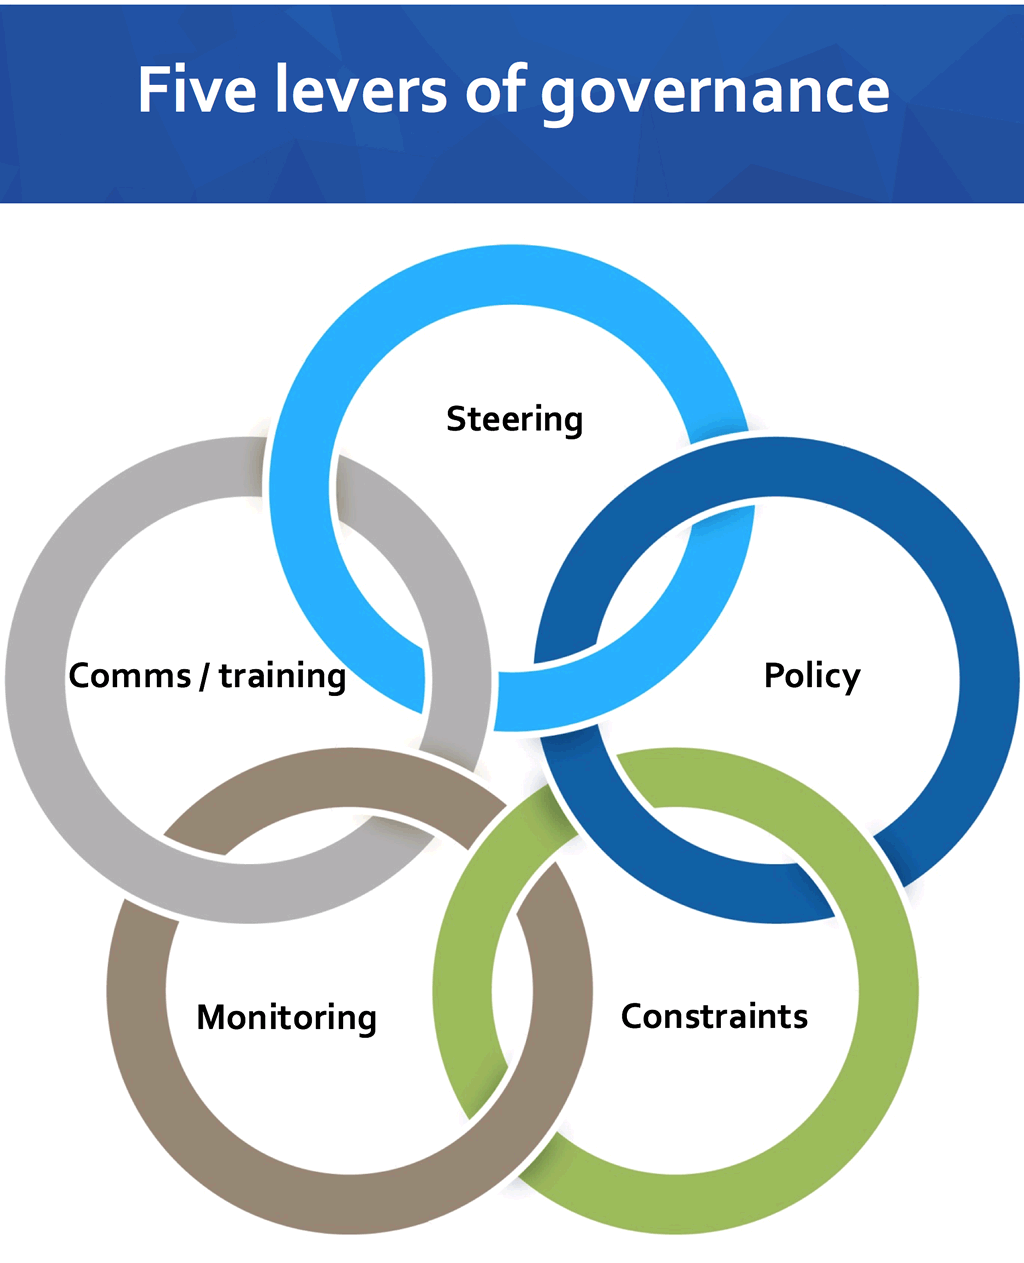 Five levers of governance